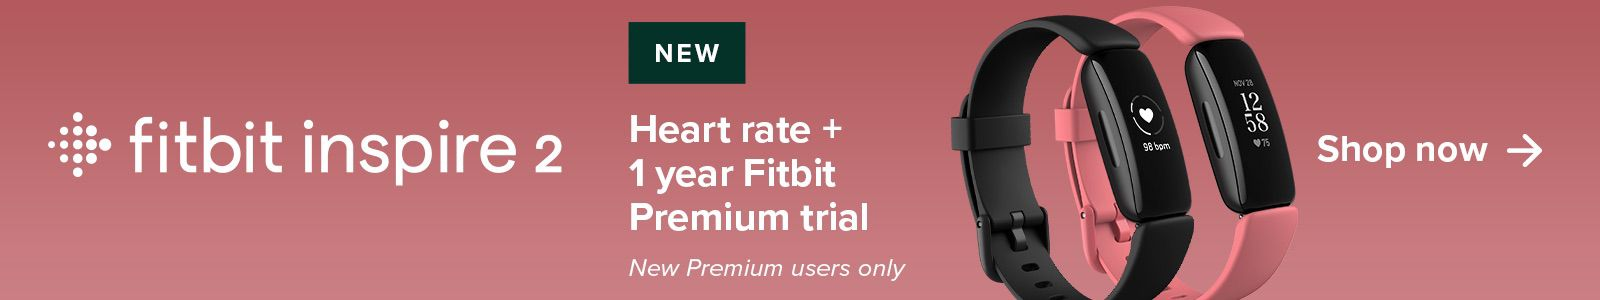 Fitbit inspire 2, New Heart rate + 1 year Fitbit Premium trail